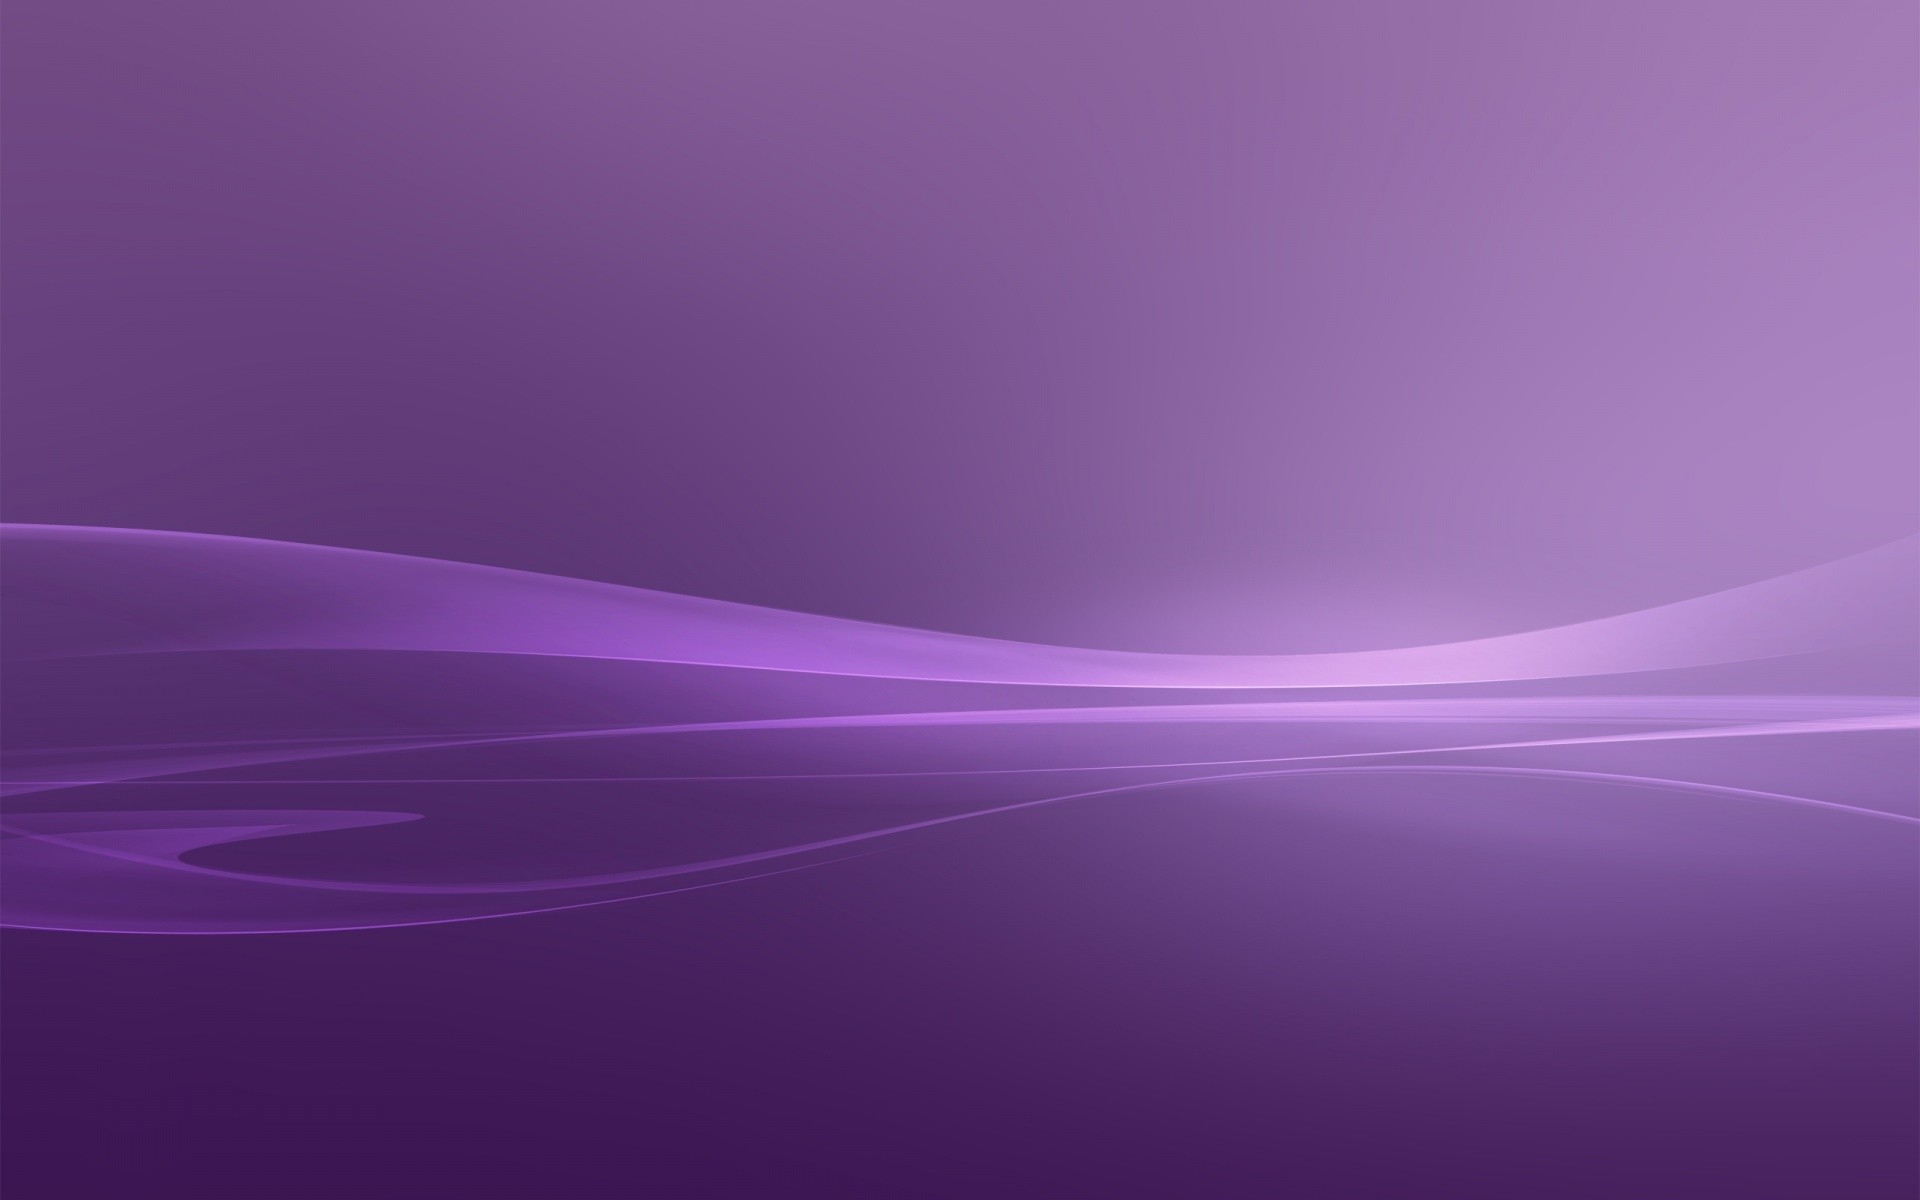 Wallpaper purple, light, solid, lines